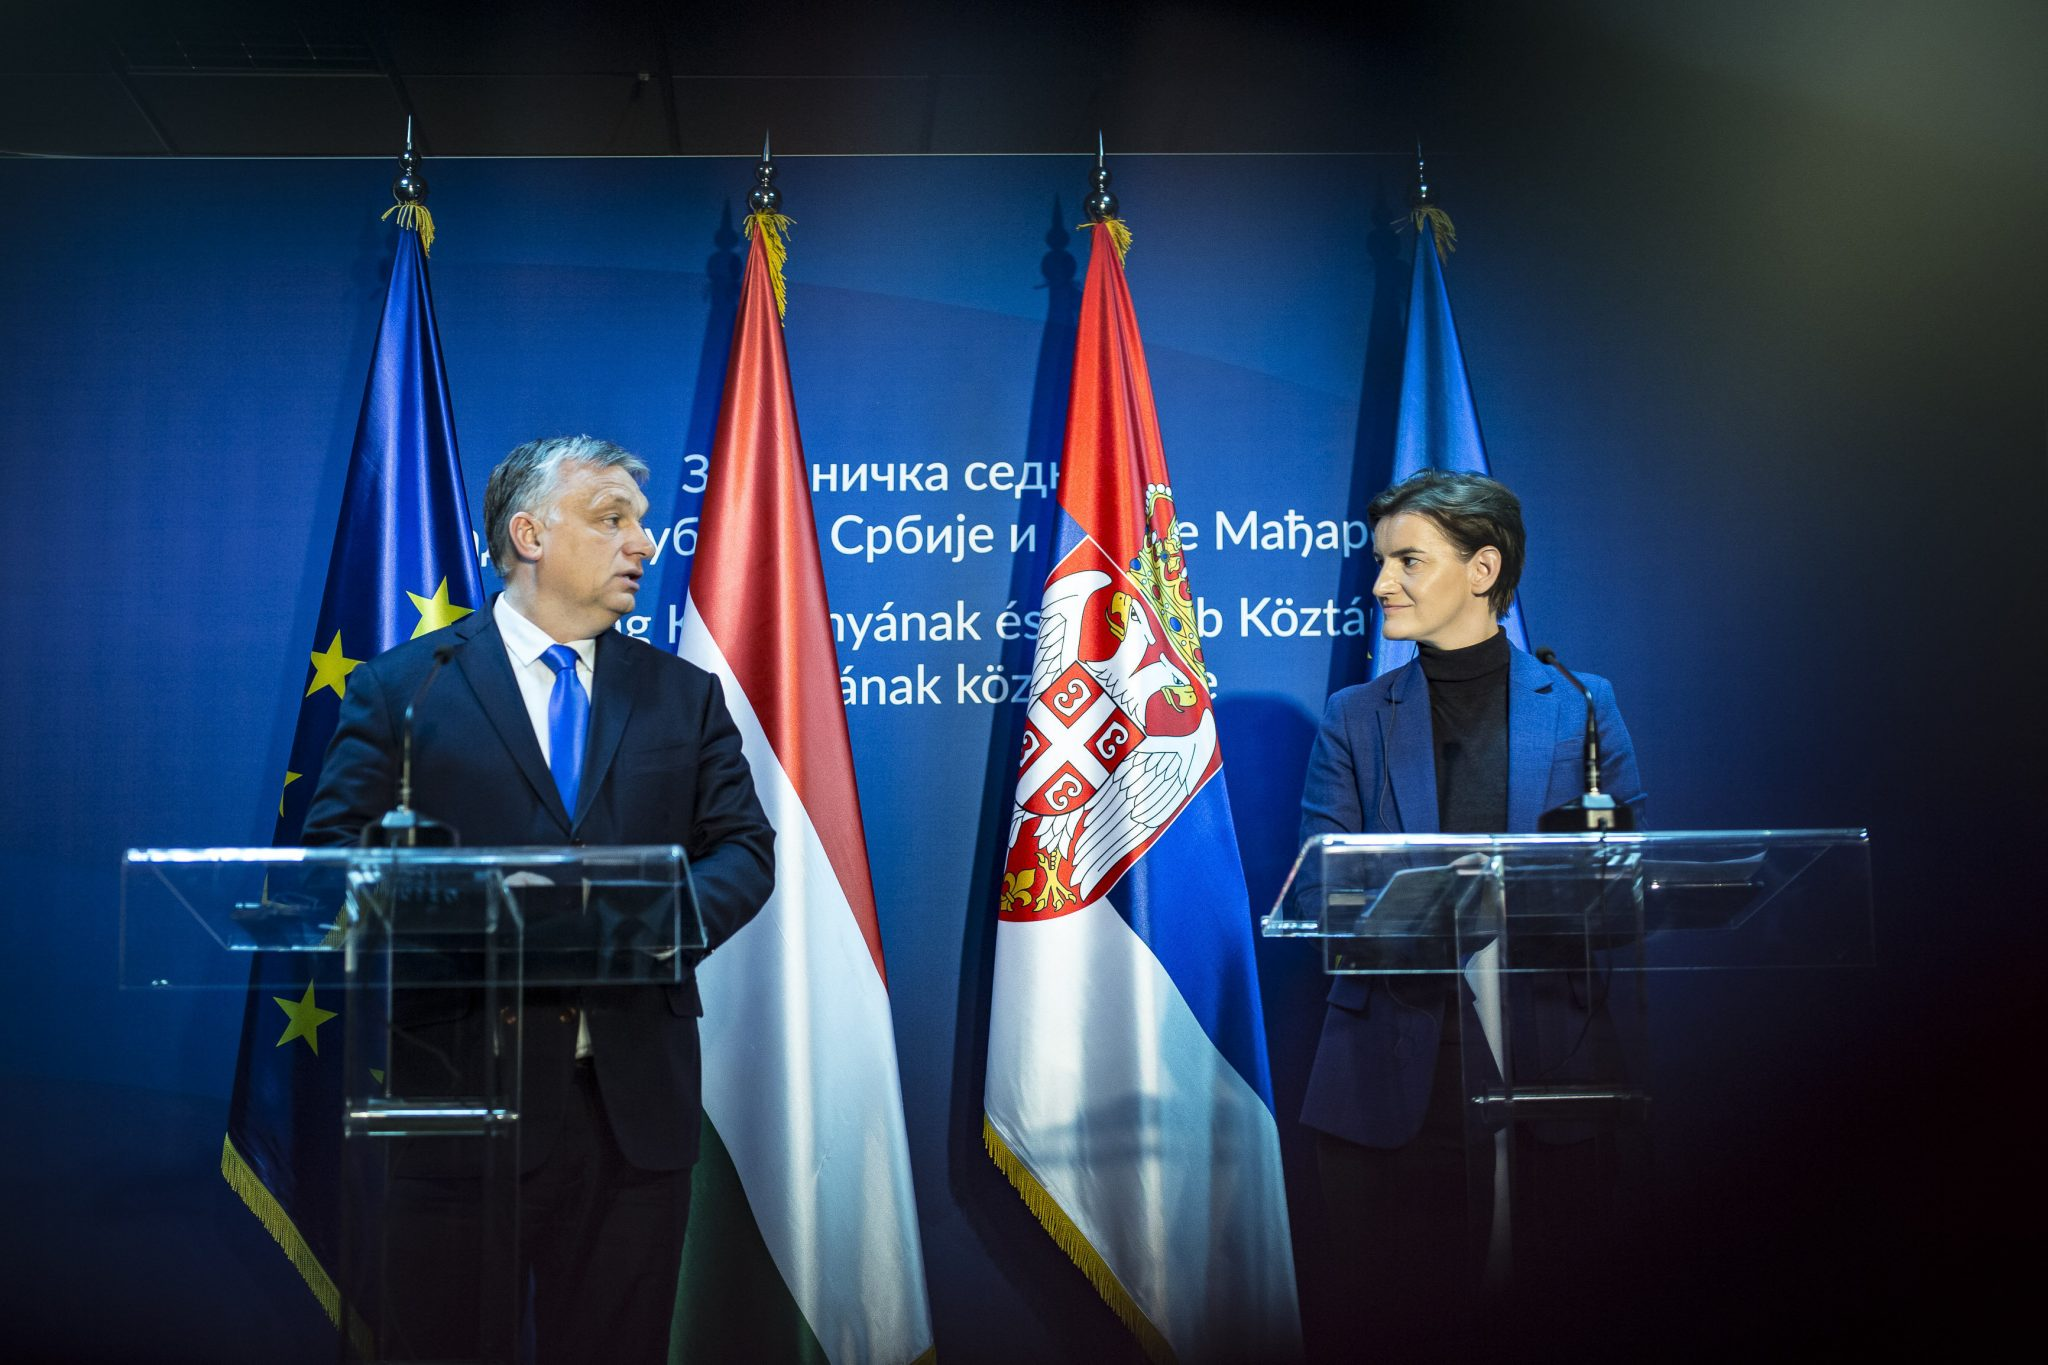 Orbán: Stemming Migration along Balkan Route 'Joint Hungary-Serbia Success' post's picture